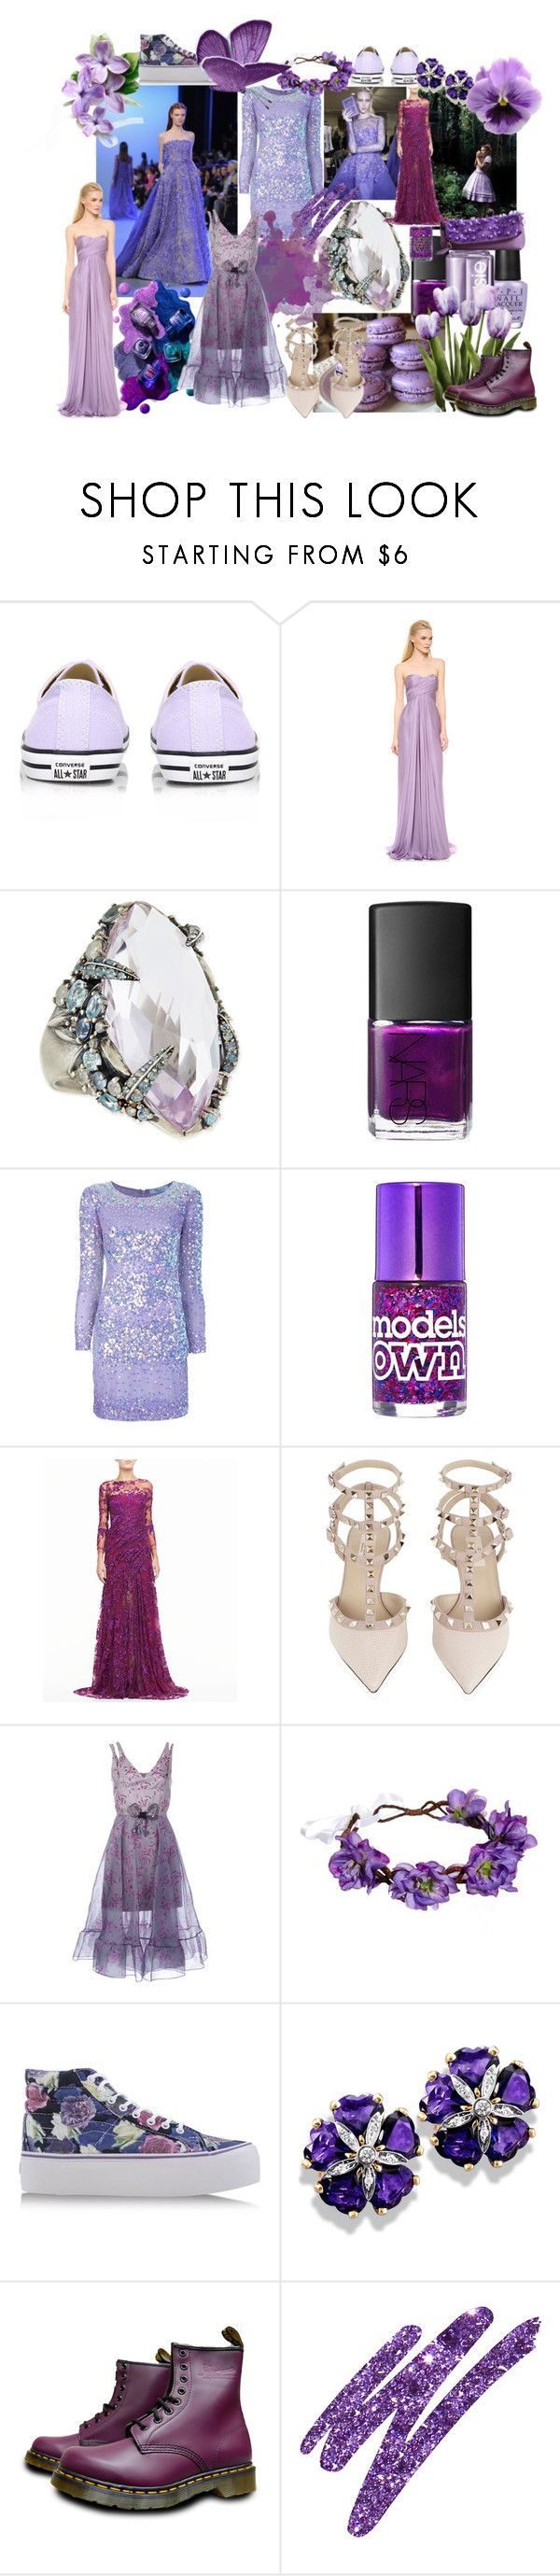 """Purple Haze"" by k8martyeve ❤ liked on Polyvore featuring Elie Saab, Converse, Reem Acra, Alexis Bittar, NARS Cosmetics, Blumarine, Monique Lhuillier, Valentino, Christopher Kane and Rock 'N Rose"